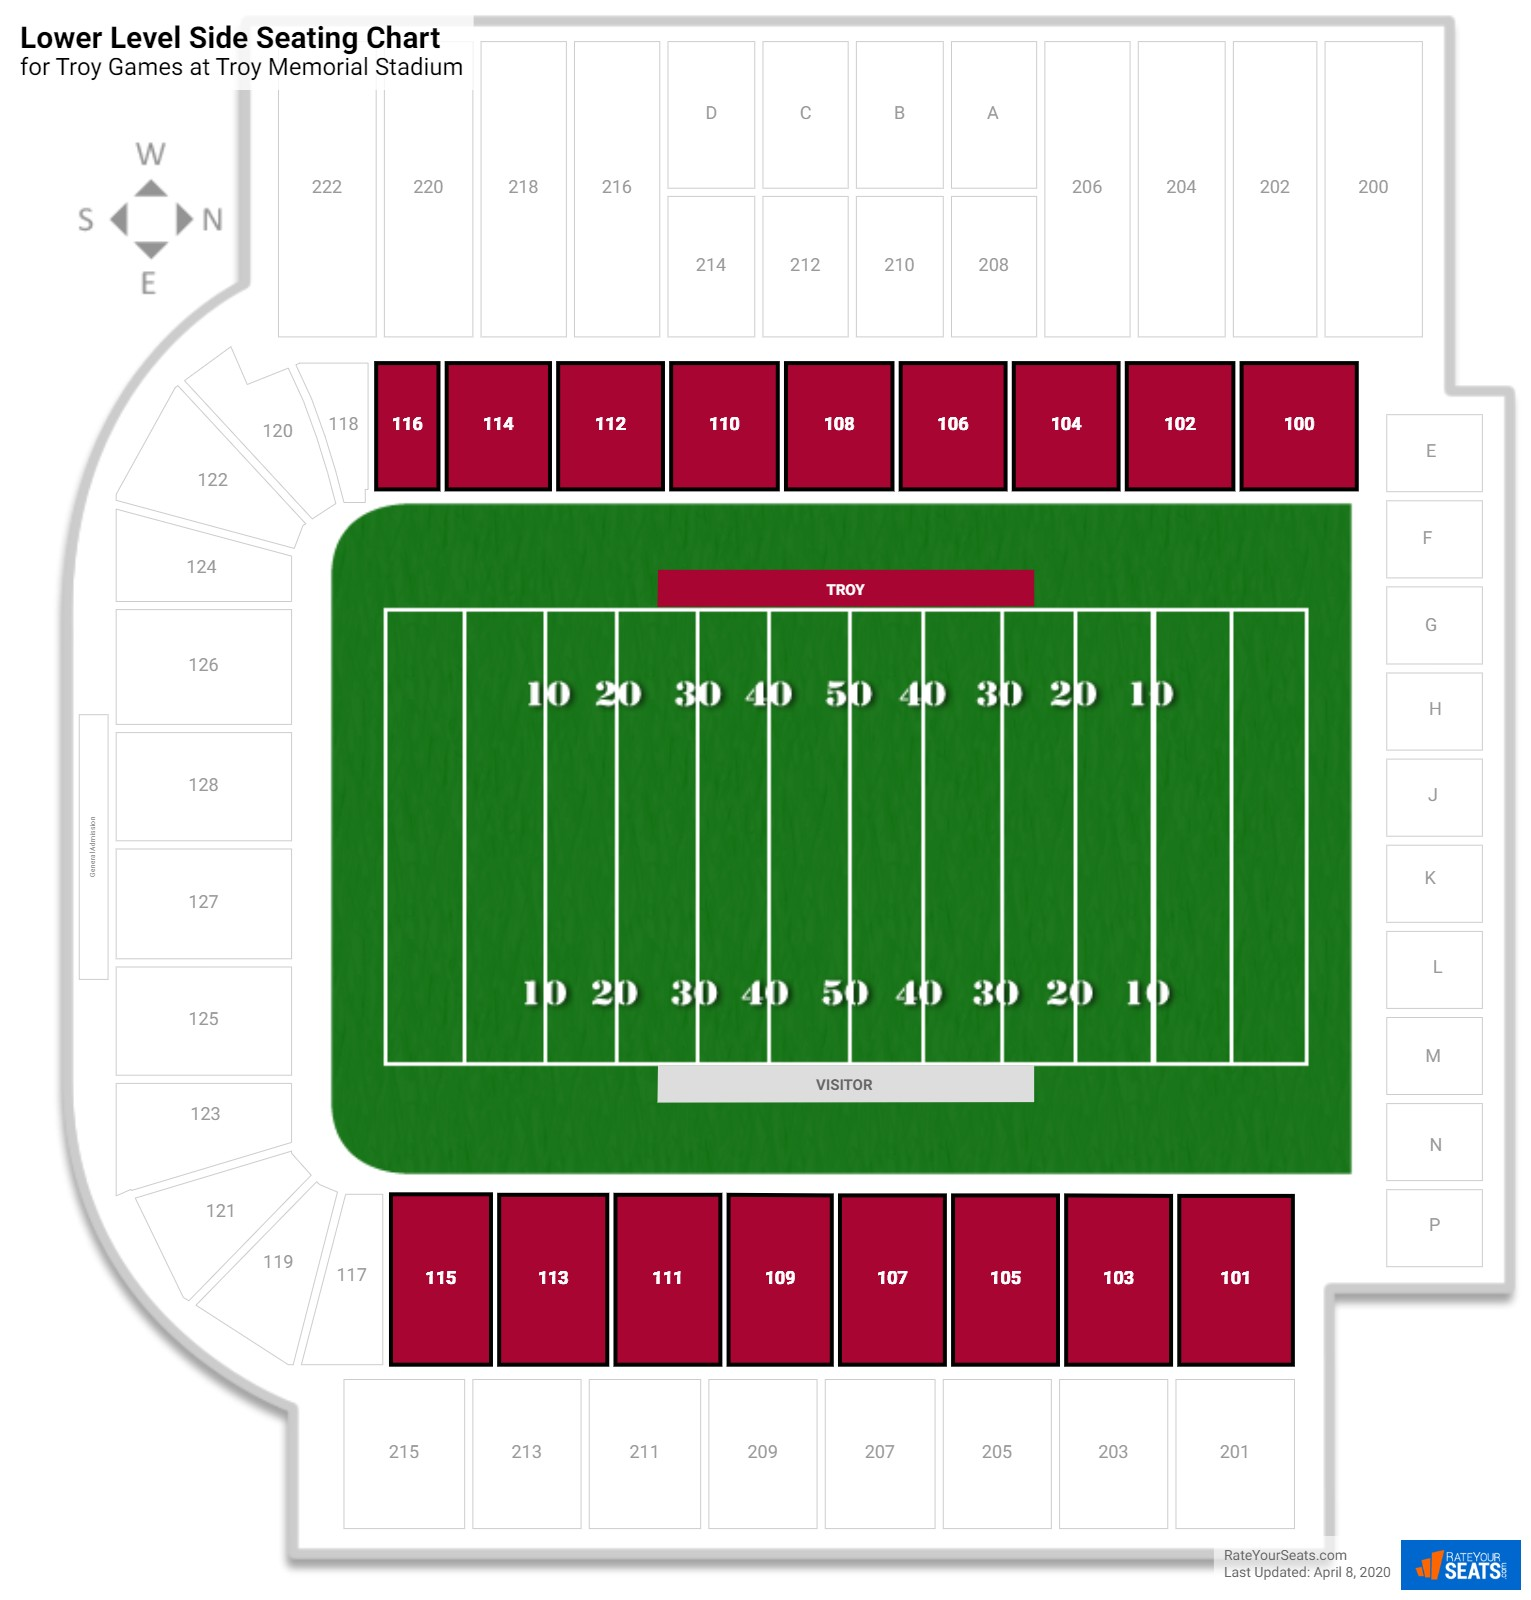 Troy Memorial Stadium Lower Level Side seating chart